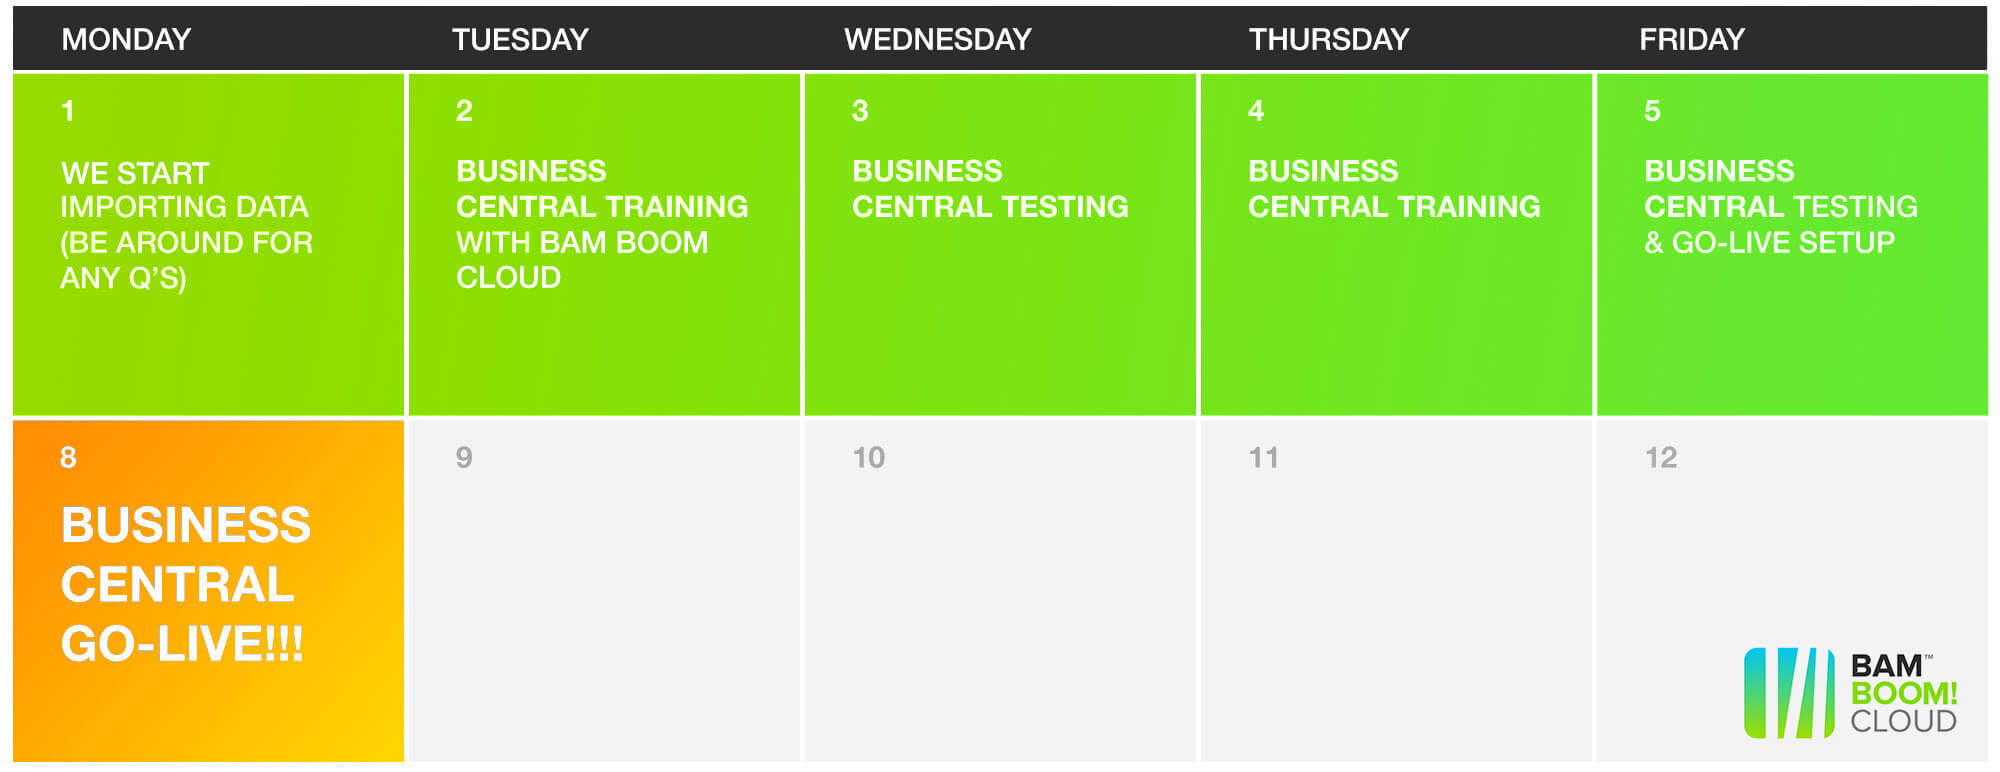 Your KickStart Calendar - switch to Business Central in just one week with Bam Boom Cloud!